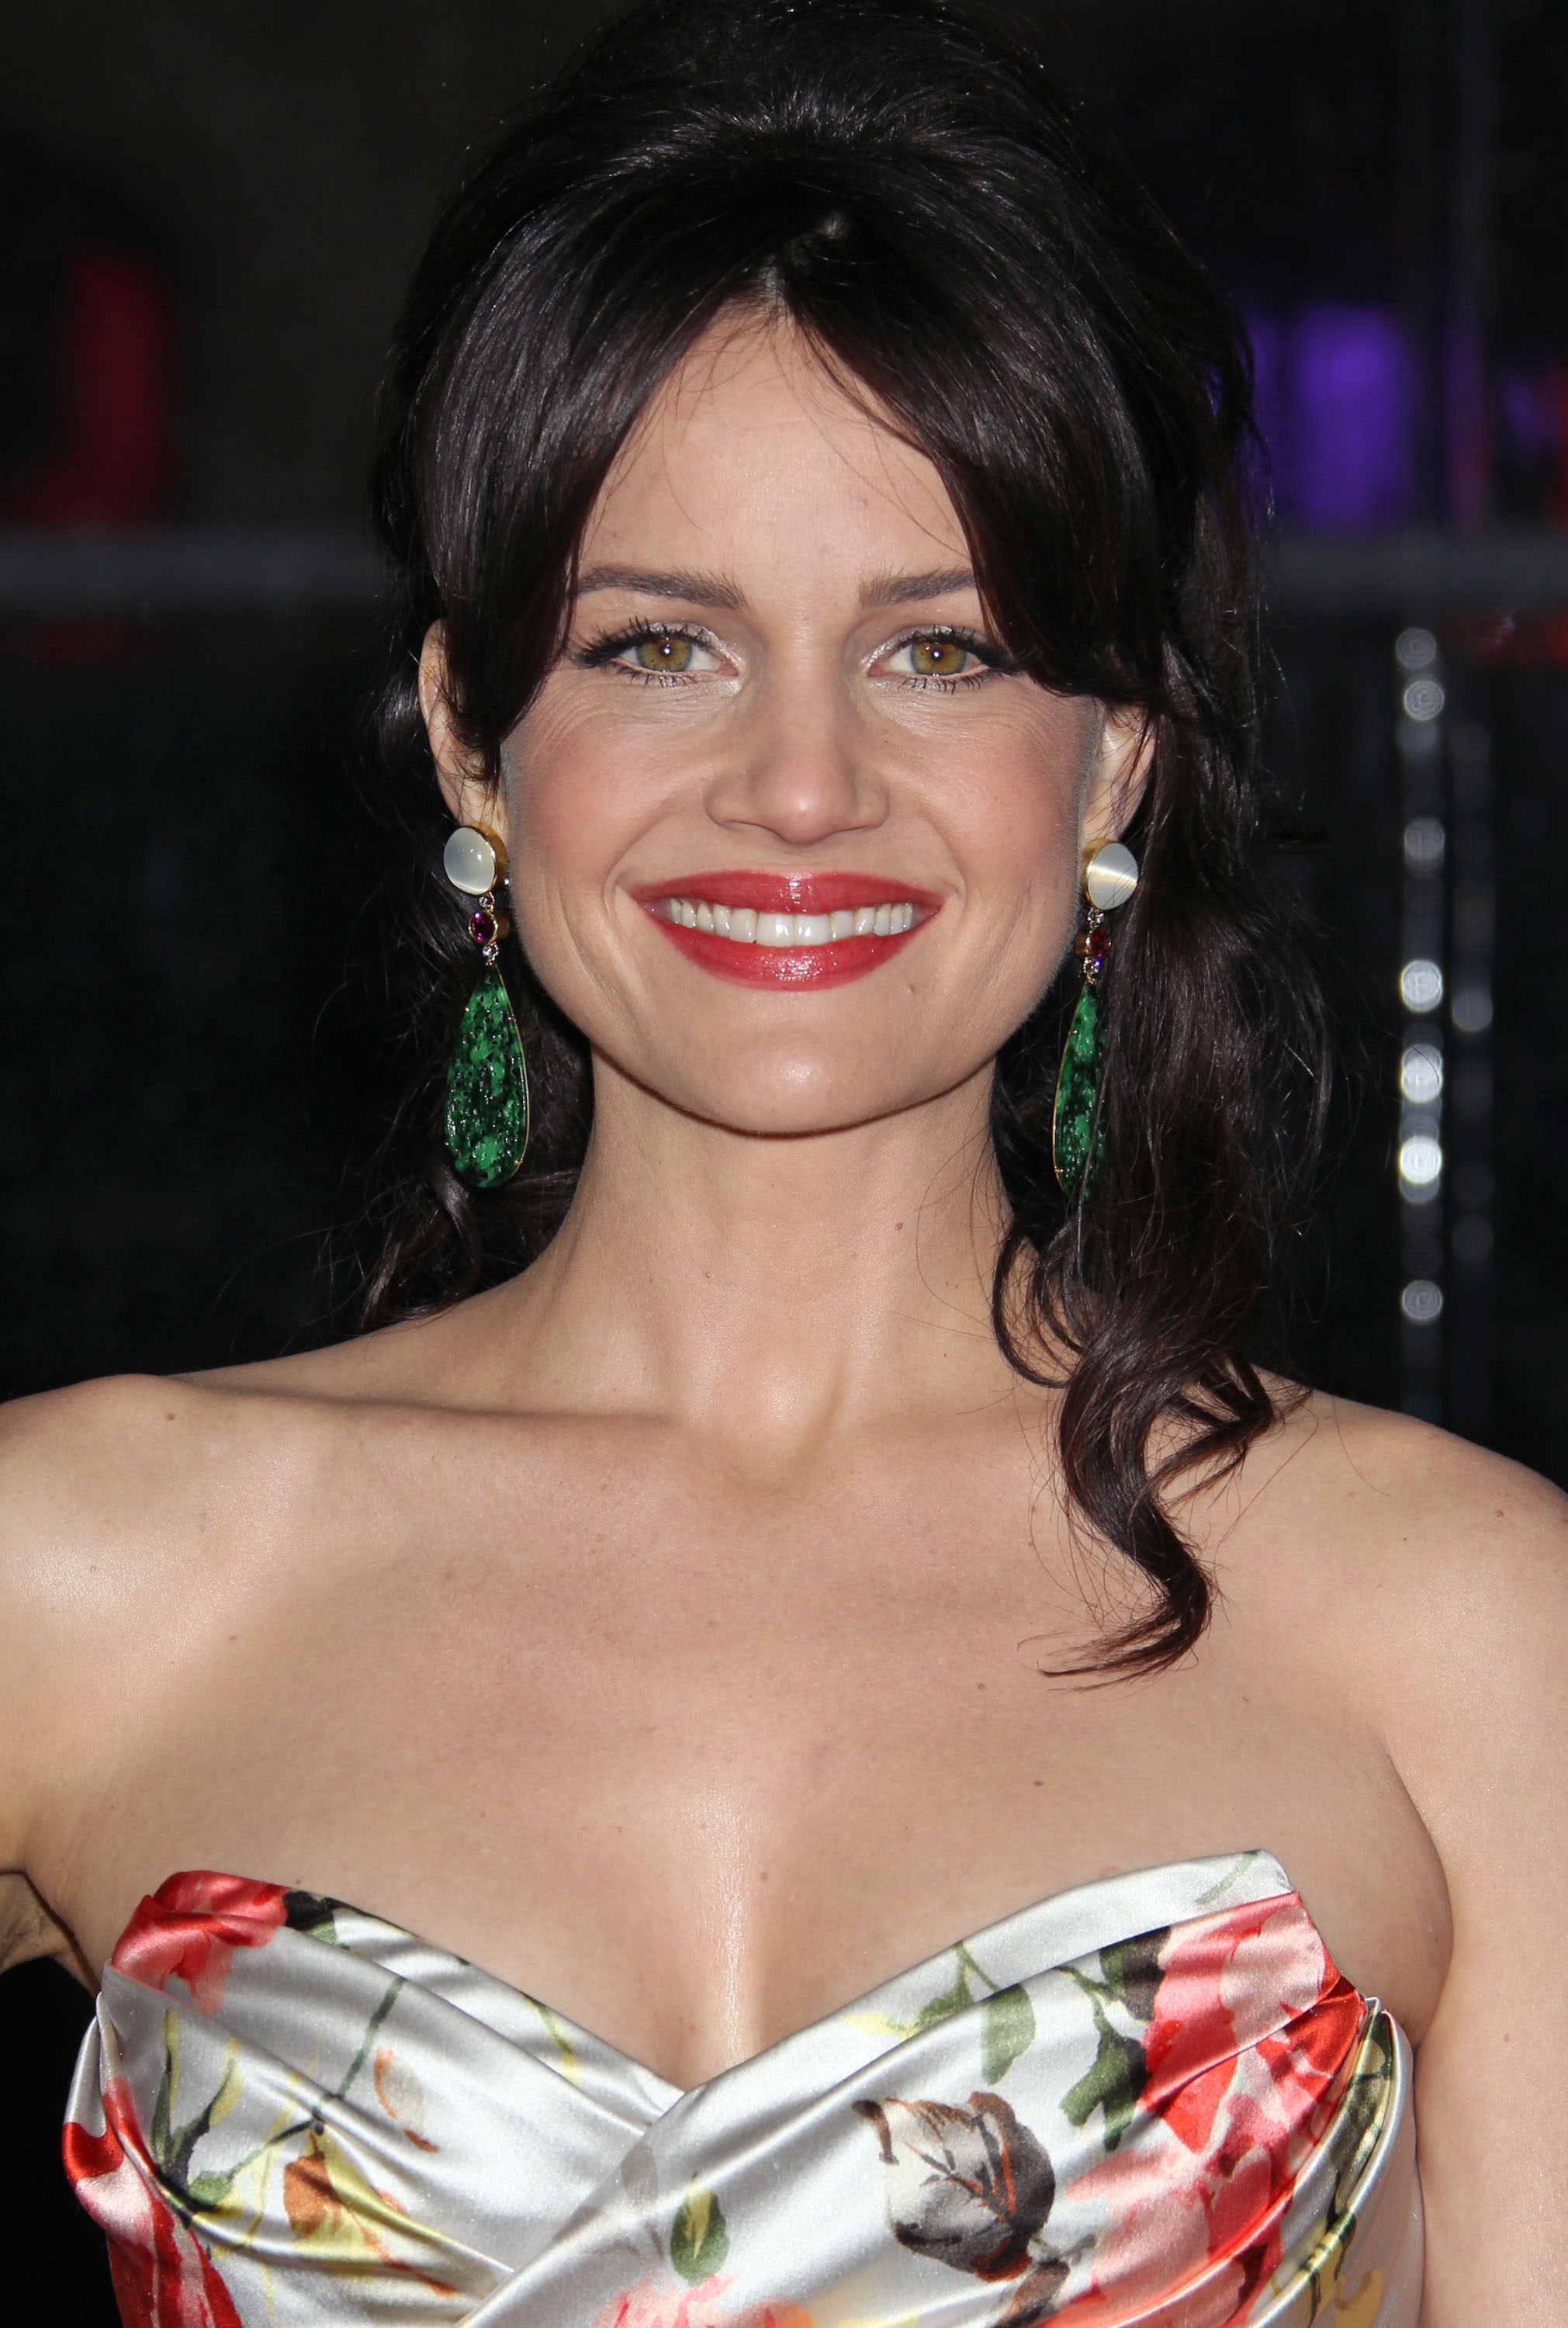 Carla Gugino nudes (21 foto), hacked Tits, iCloud, cleavage 2016